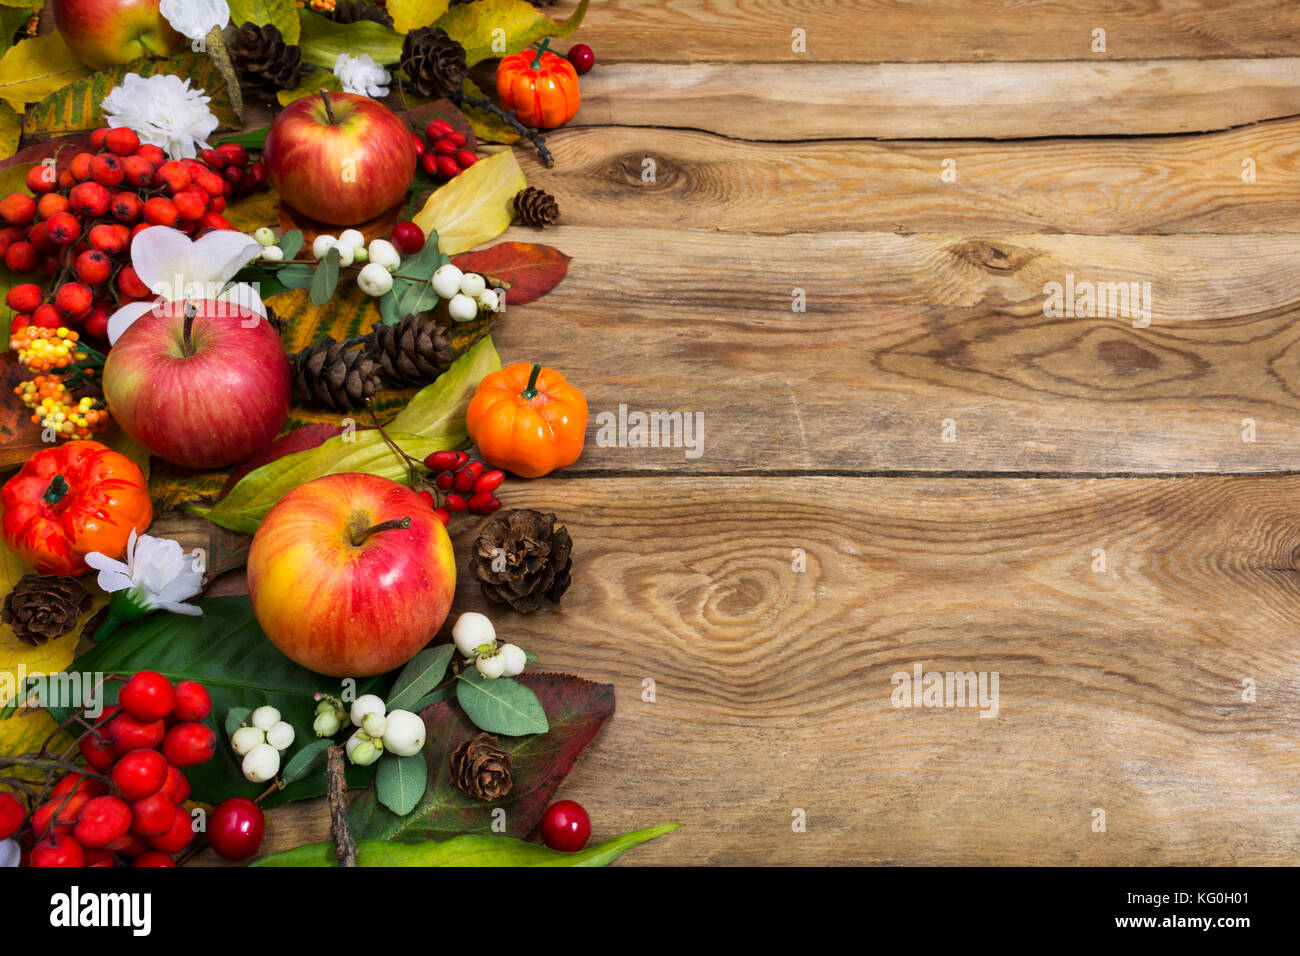 Thanksgiving Or Fall Greeting Background With Pumpkins Apples Red And White Berries On The Rustic Wooden Table Copy Space